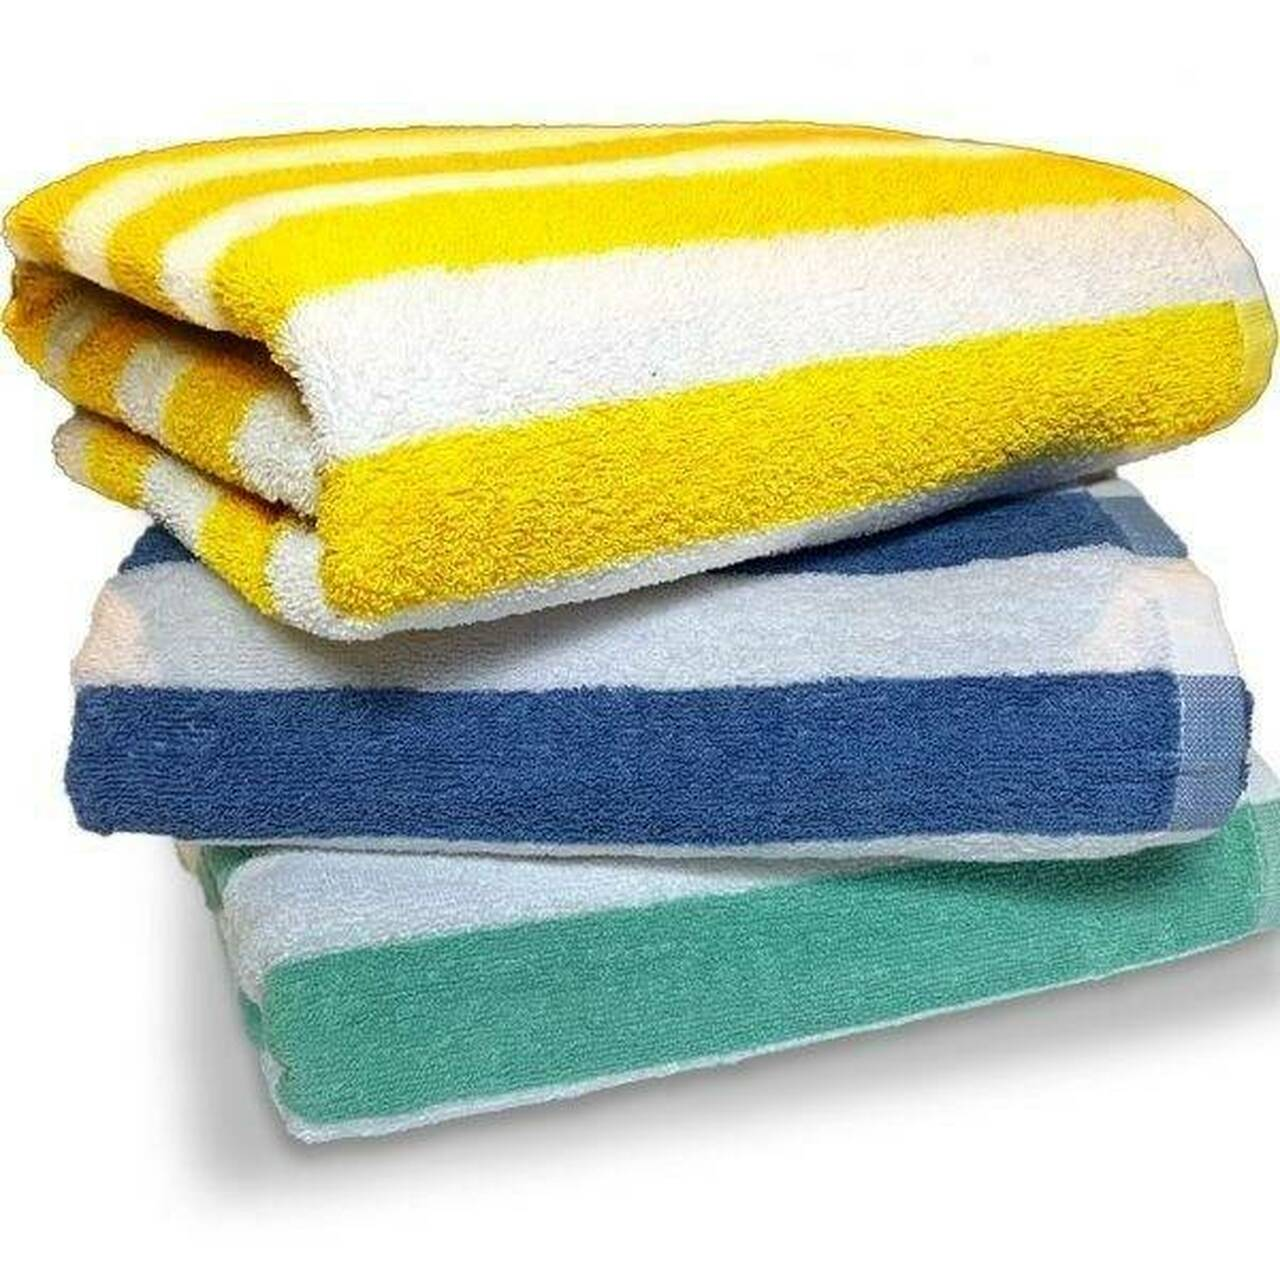 THOMASTON MILLS THOMASTON MILLS or 30x70 ISLAND STRIPE POOL TOWELS